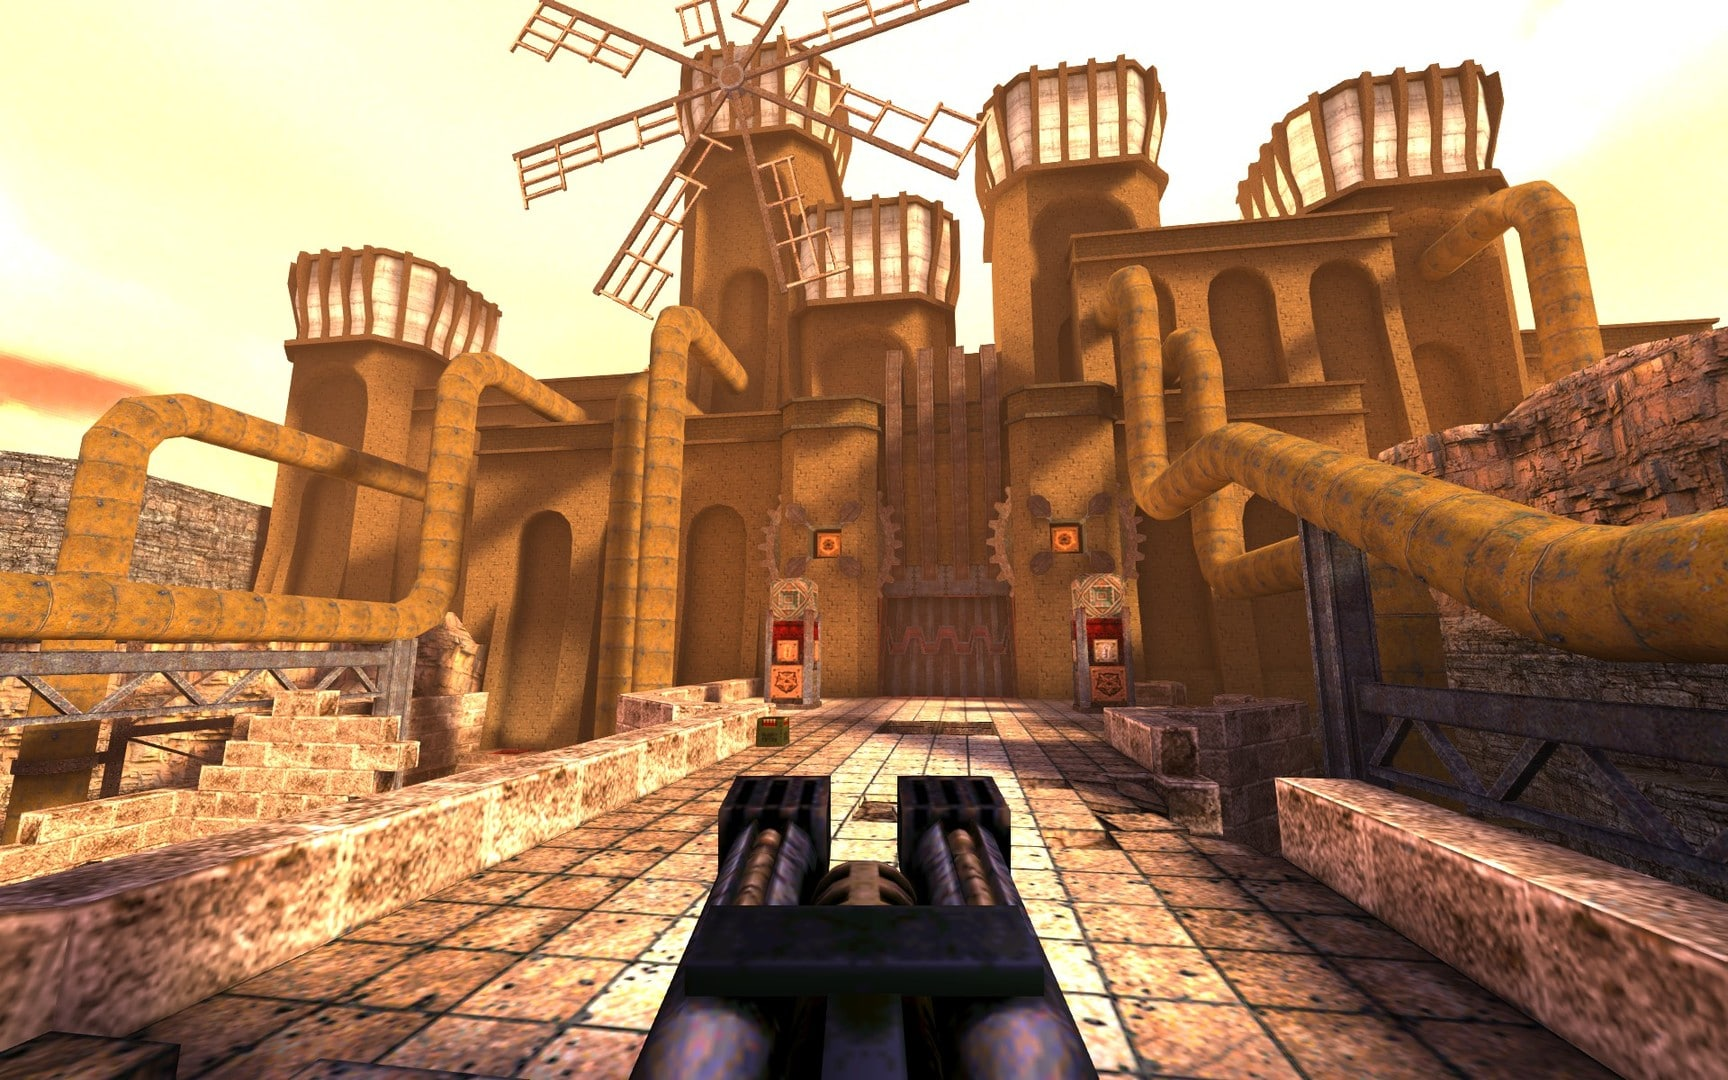 second look quake id software remaster excellent classic eternal thanks to brilliant design and long-term official mod support, Trenchbroom